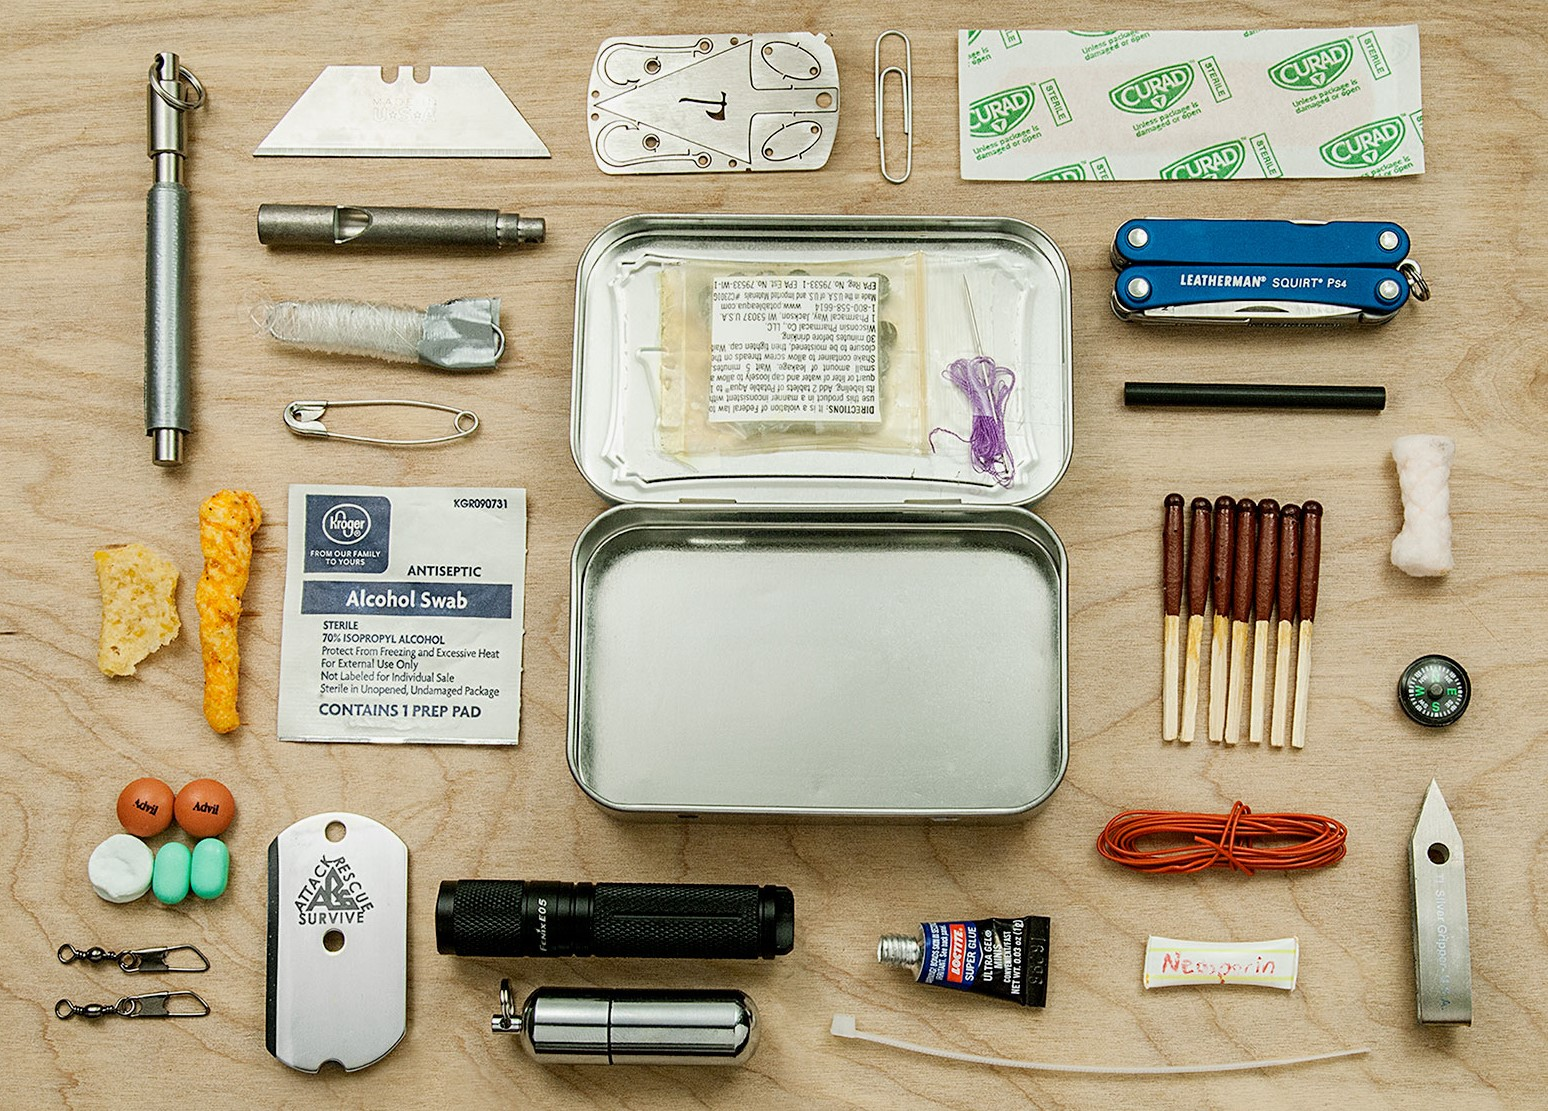 How to Make a Survival Kit photo